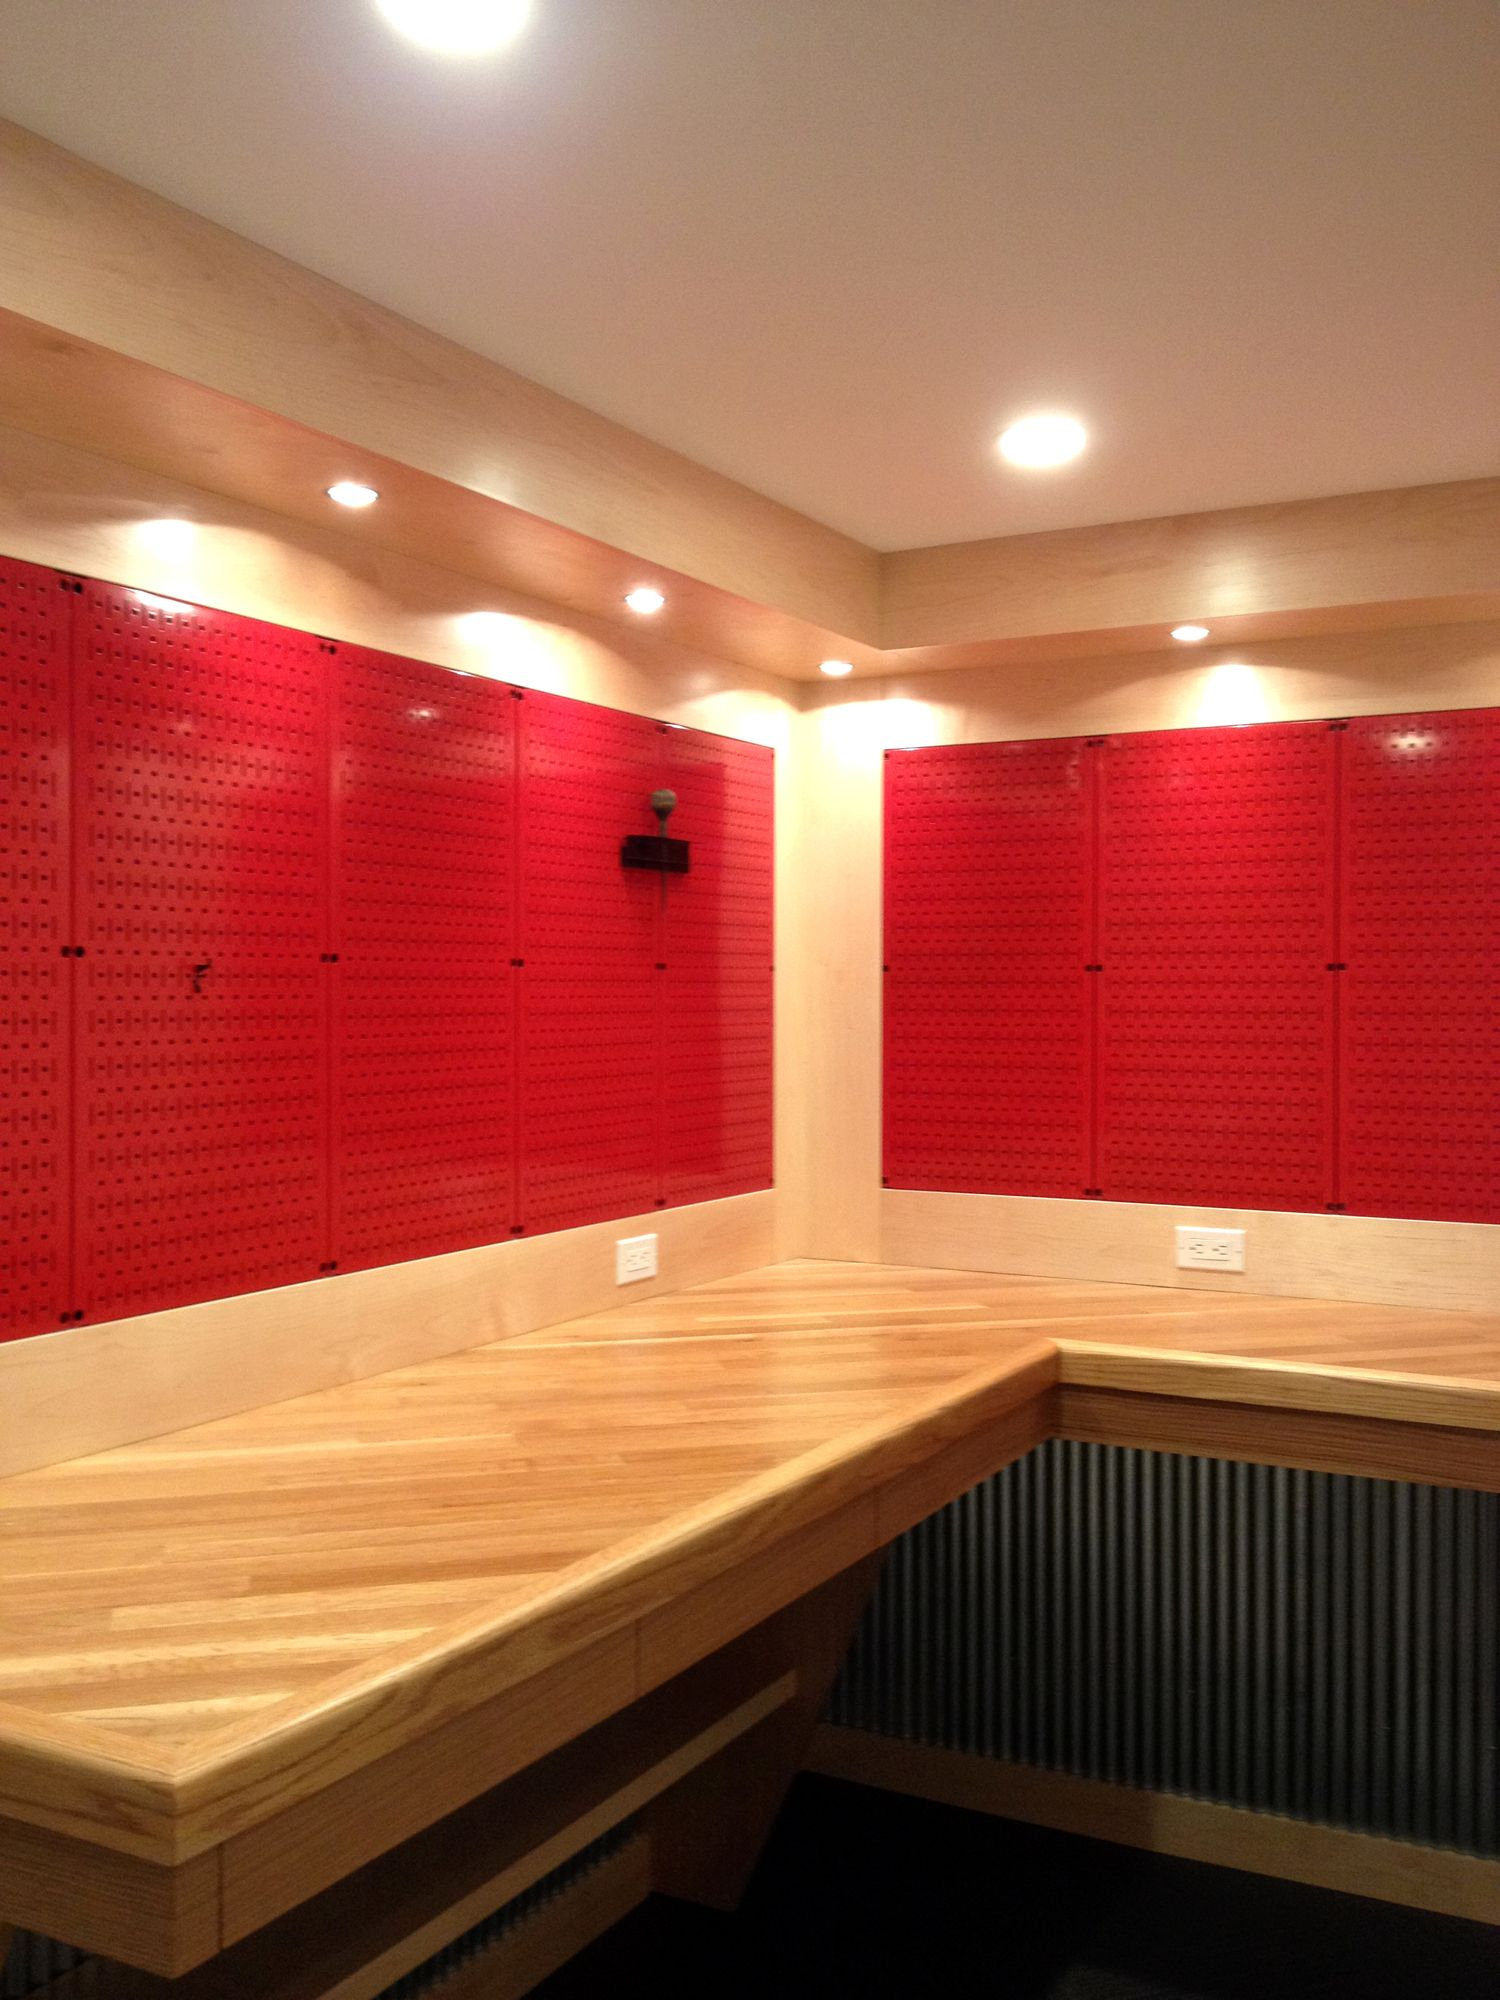 A REALLY Nice Workbench With Red Metal Pegboard Panels From Wall Control OrganizationWorkbench IdeasWorkbench LightWorkbench